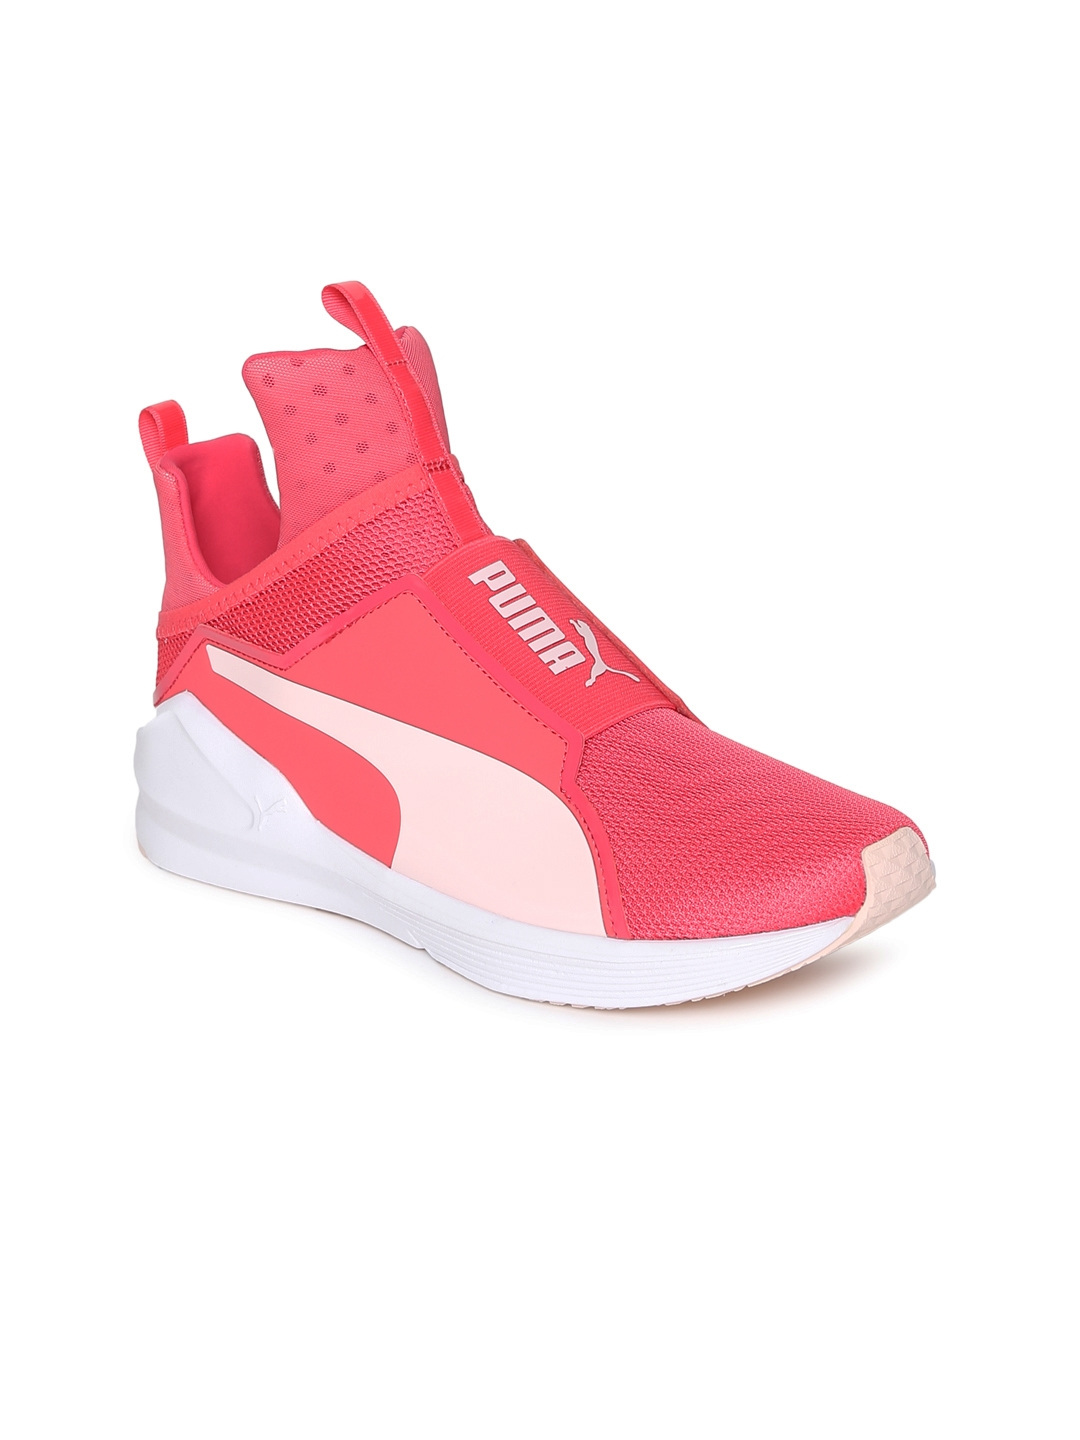 Buy Puma Women Pink Fierce Core Training Shoes - Sports Shoes for ... 34c574904